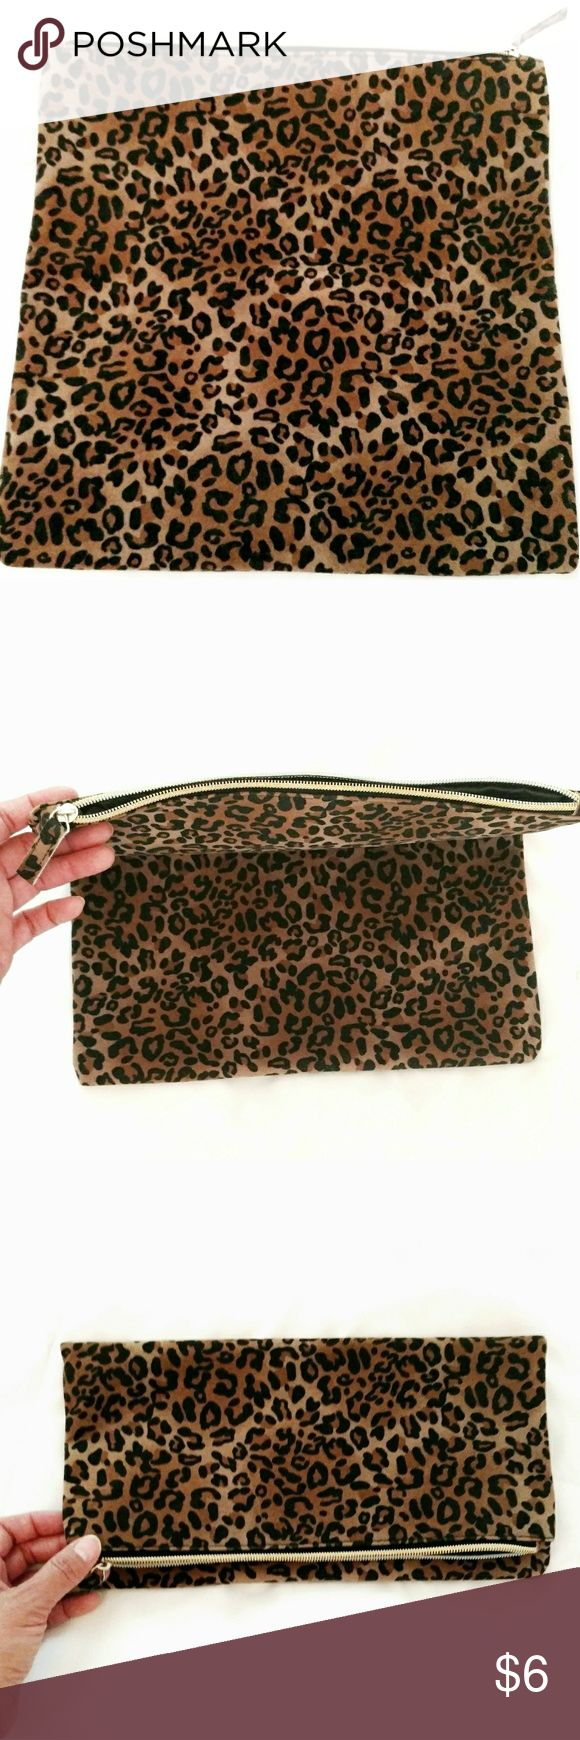 Leopard fabric clutch Leopard fabric clutch from Red Dress boutique, roughly 12 x 12 in. Un folded, 6 x 12 when folded. Brown lining, gold zipper, no tag for fabric content. Used twice, in excellent condition, like new. Red Dress Boutique Bags Clutches & Wristlets